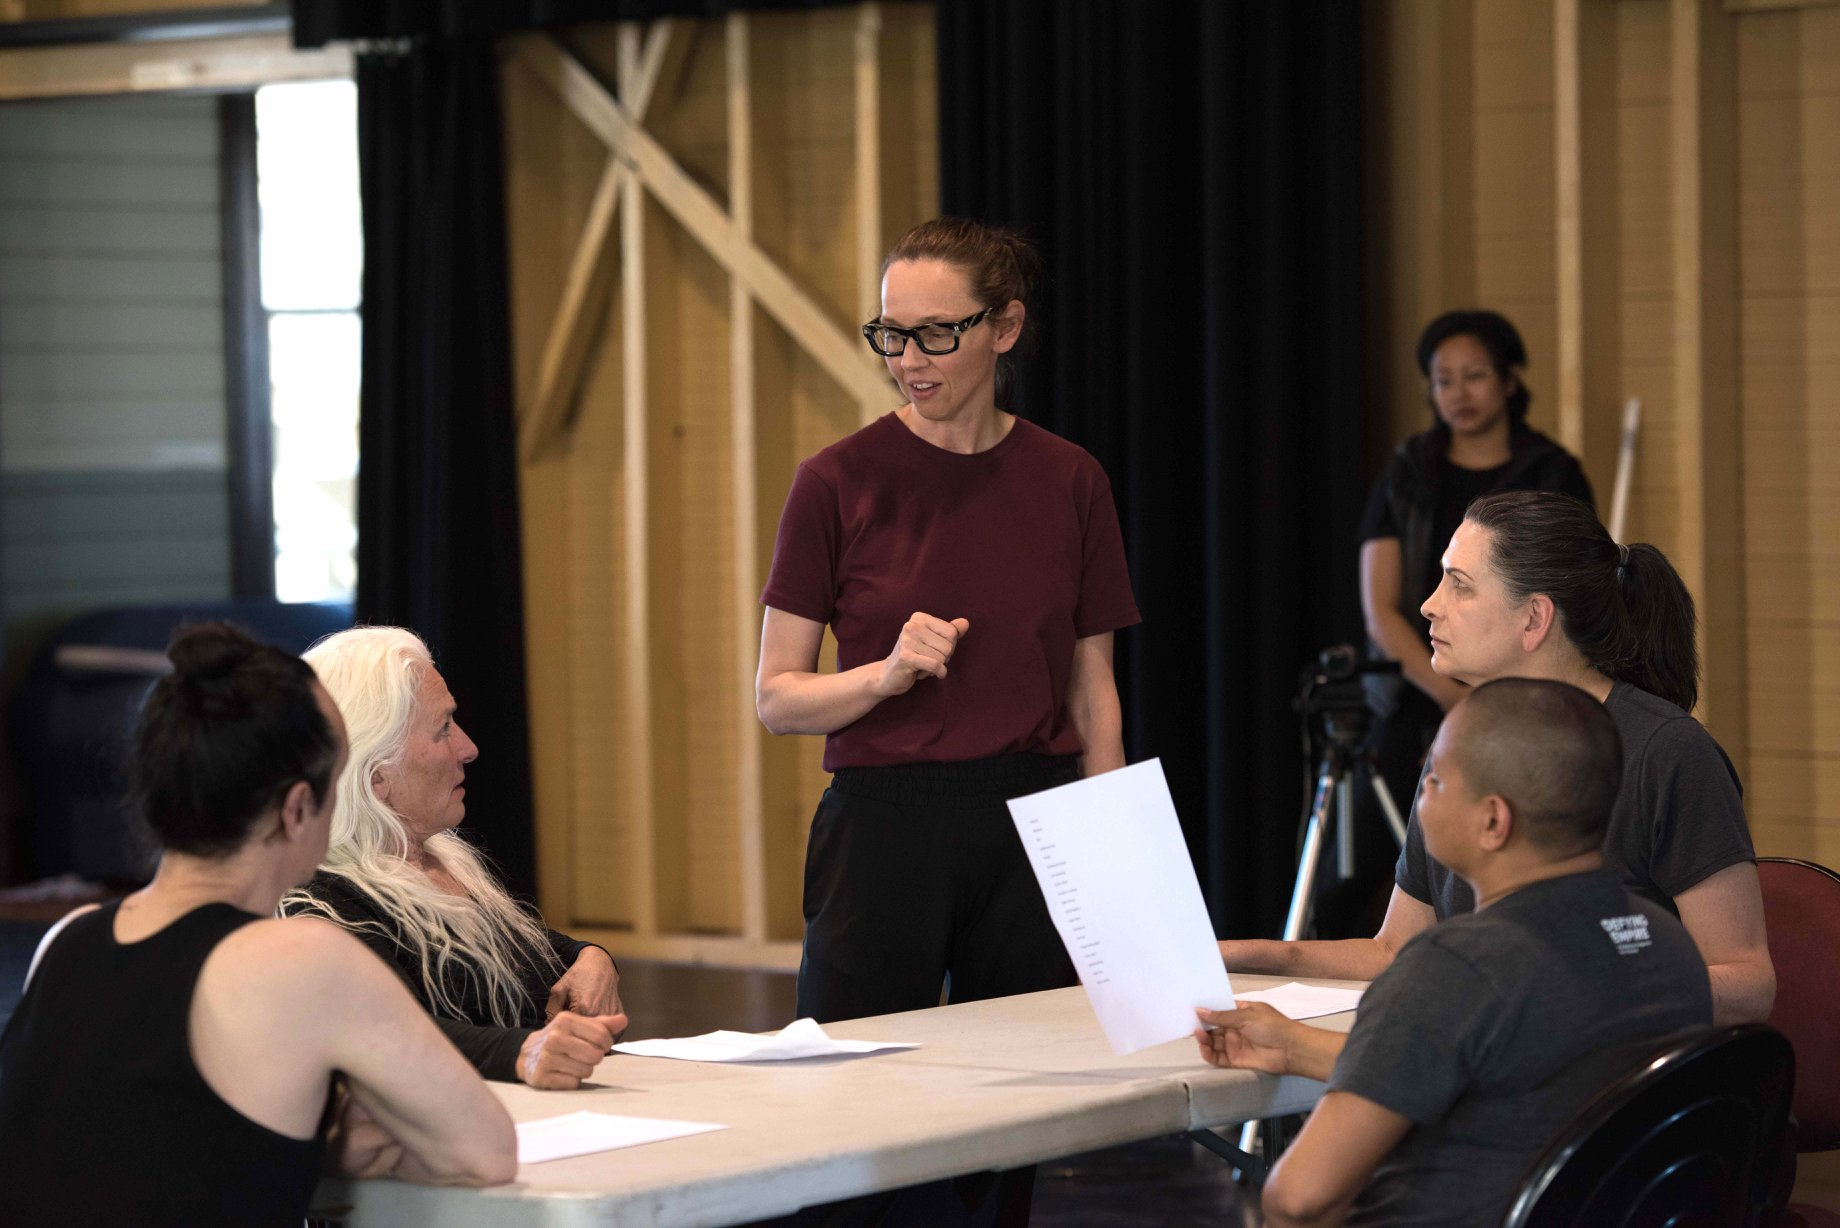 Danielle Micich directing Paul Capsis, Olwen Foréré, Danielle Micich, Pamela Rabe and Ursula Yovich in Creative development for Four Seasons. 2019. Photo by Ashley de Prazer